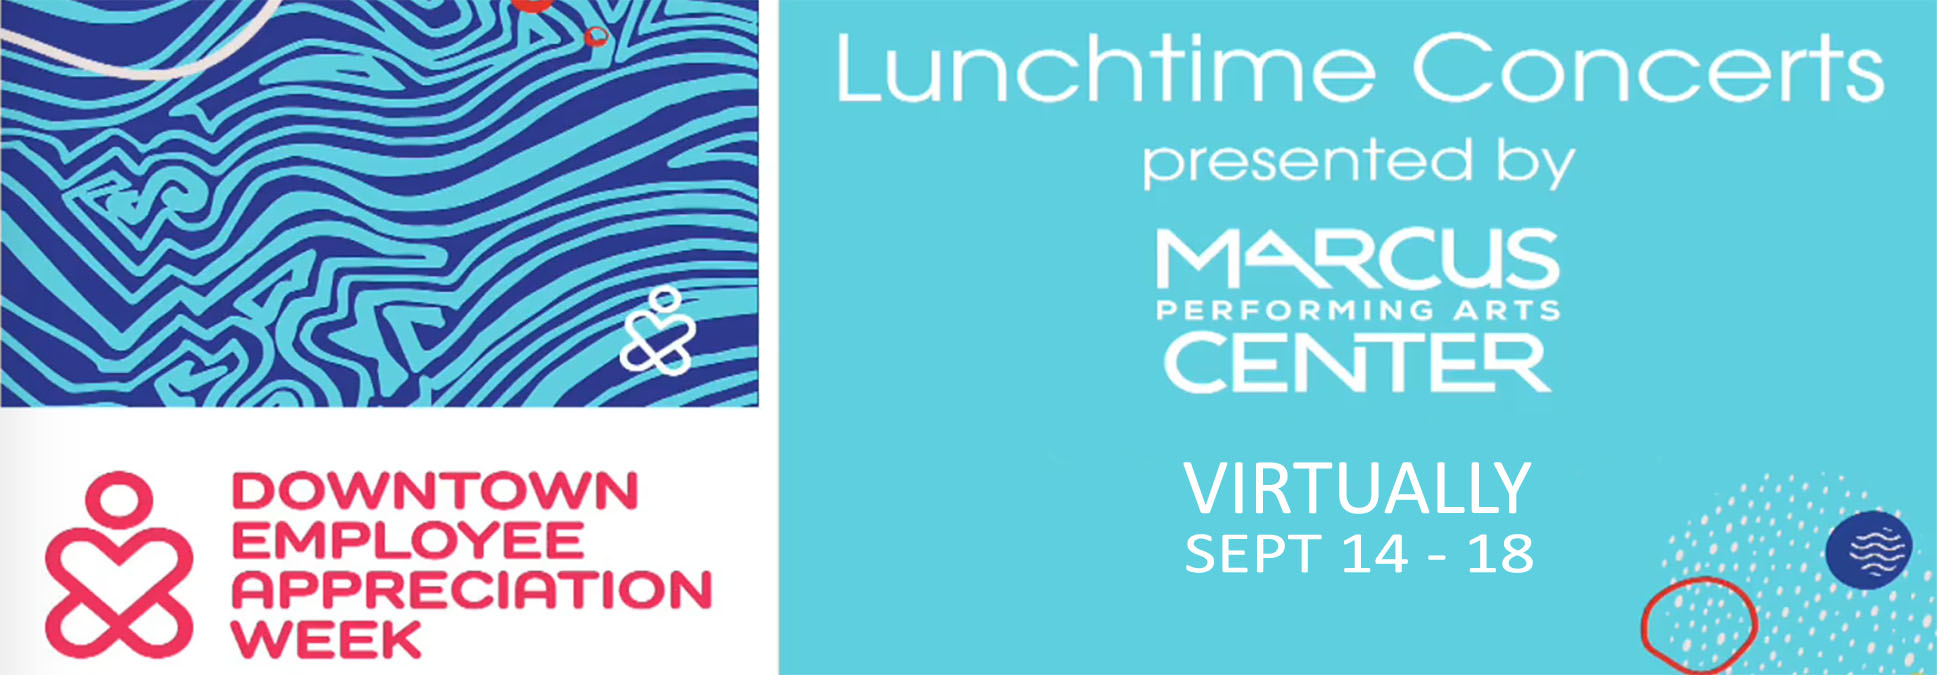 Downtown Employee Appreciation Week Lunch Concerts - 2020